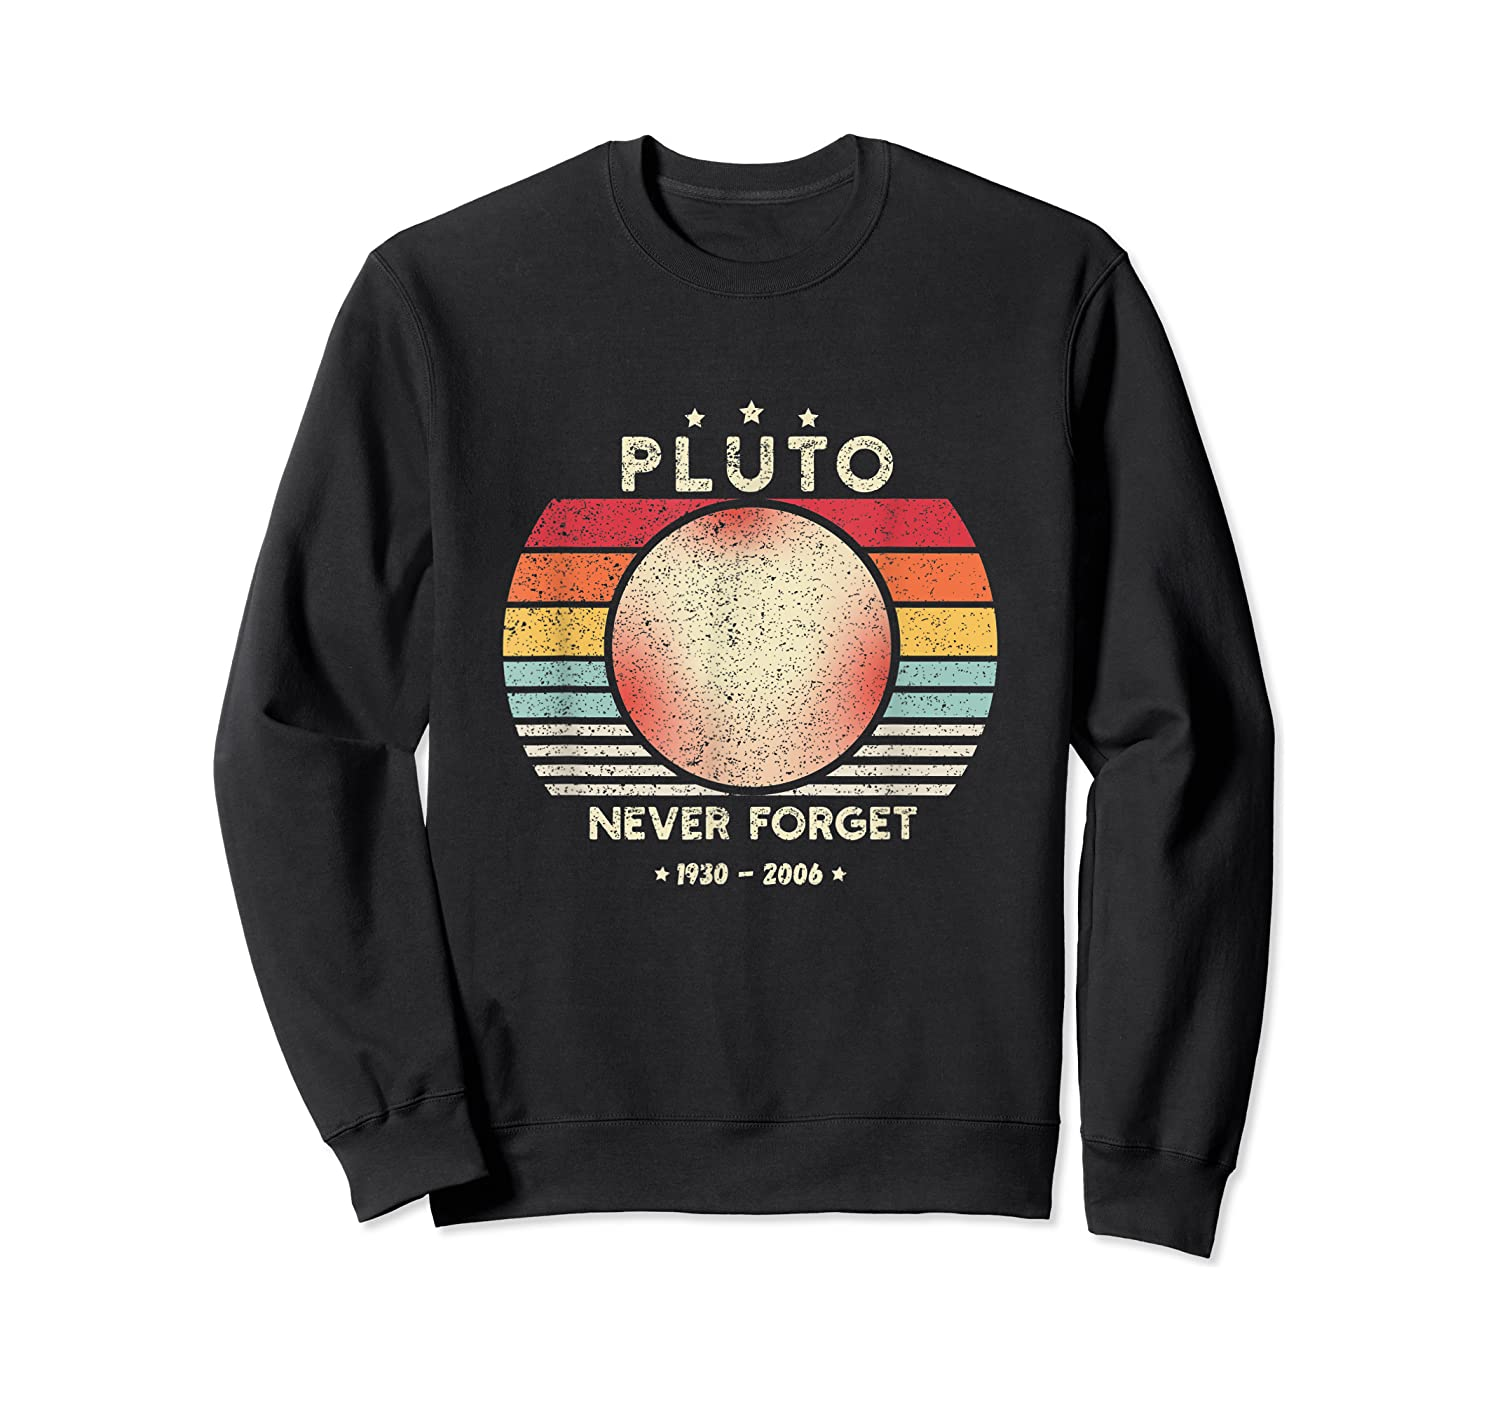 Never Forget Pluto Shirt Retro Style Funny Space, Science T-shirt Crewneck Sweater